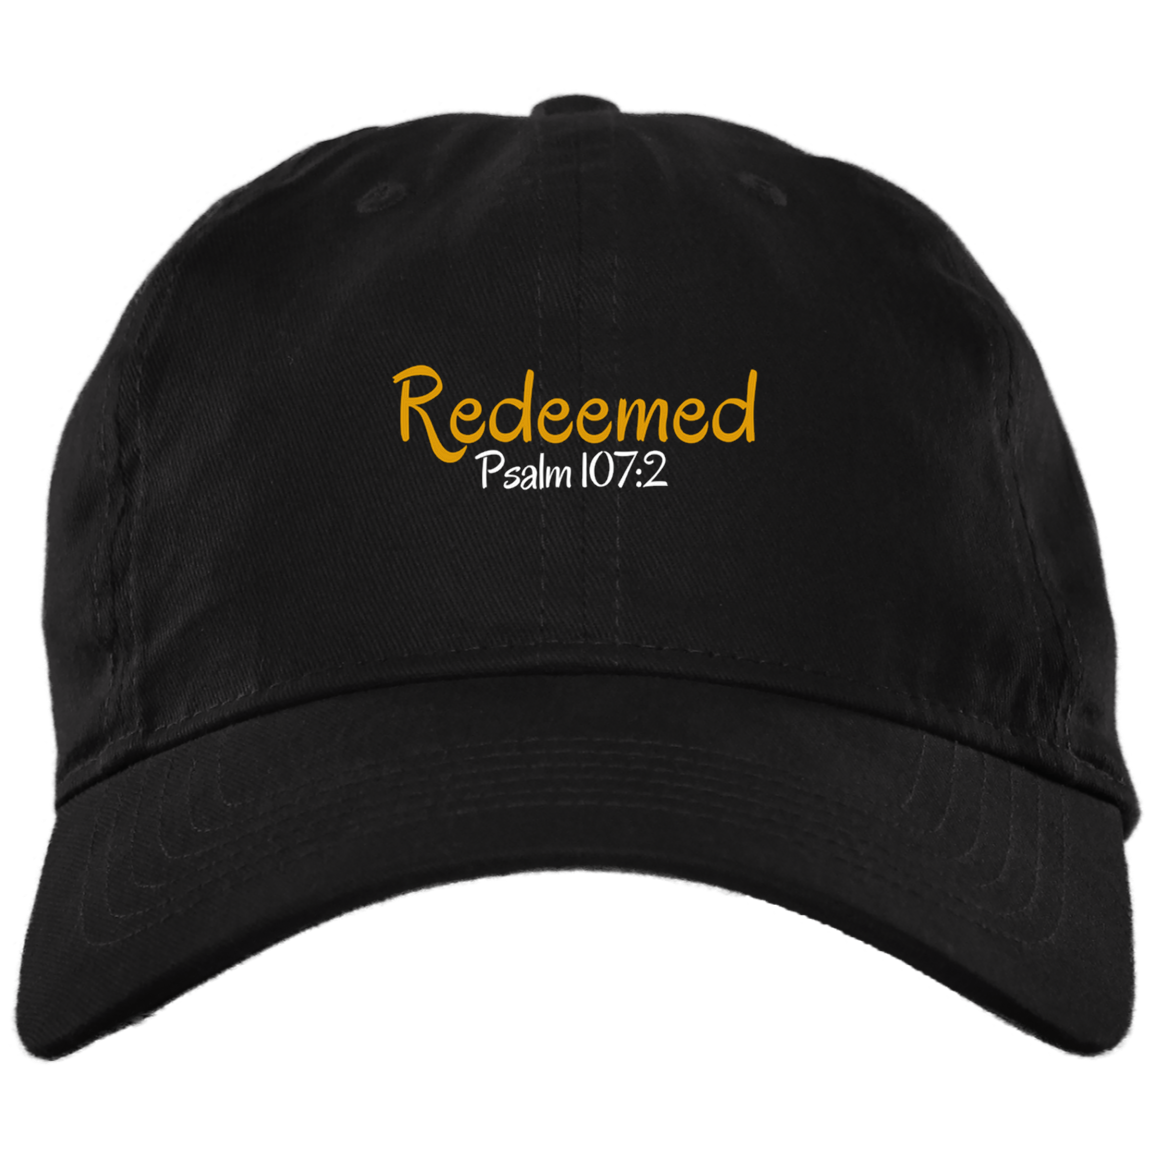 Redeemed 3 BX001 Brushed Twill Unstructured Dad Cap